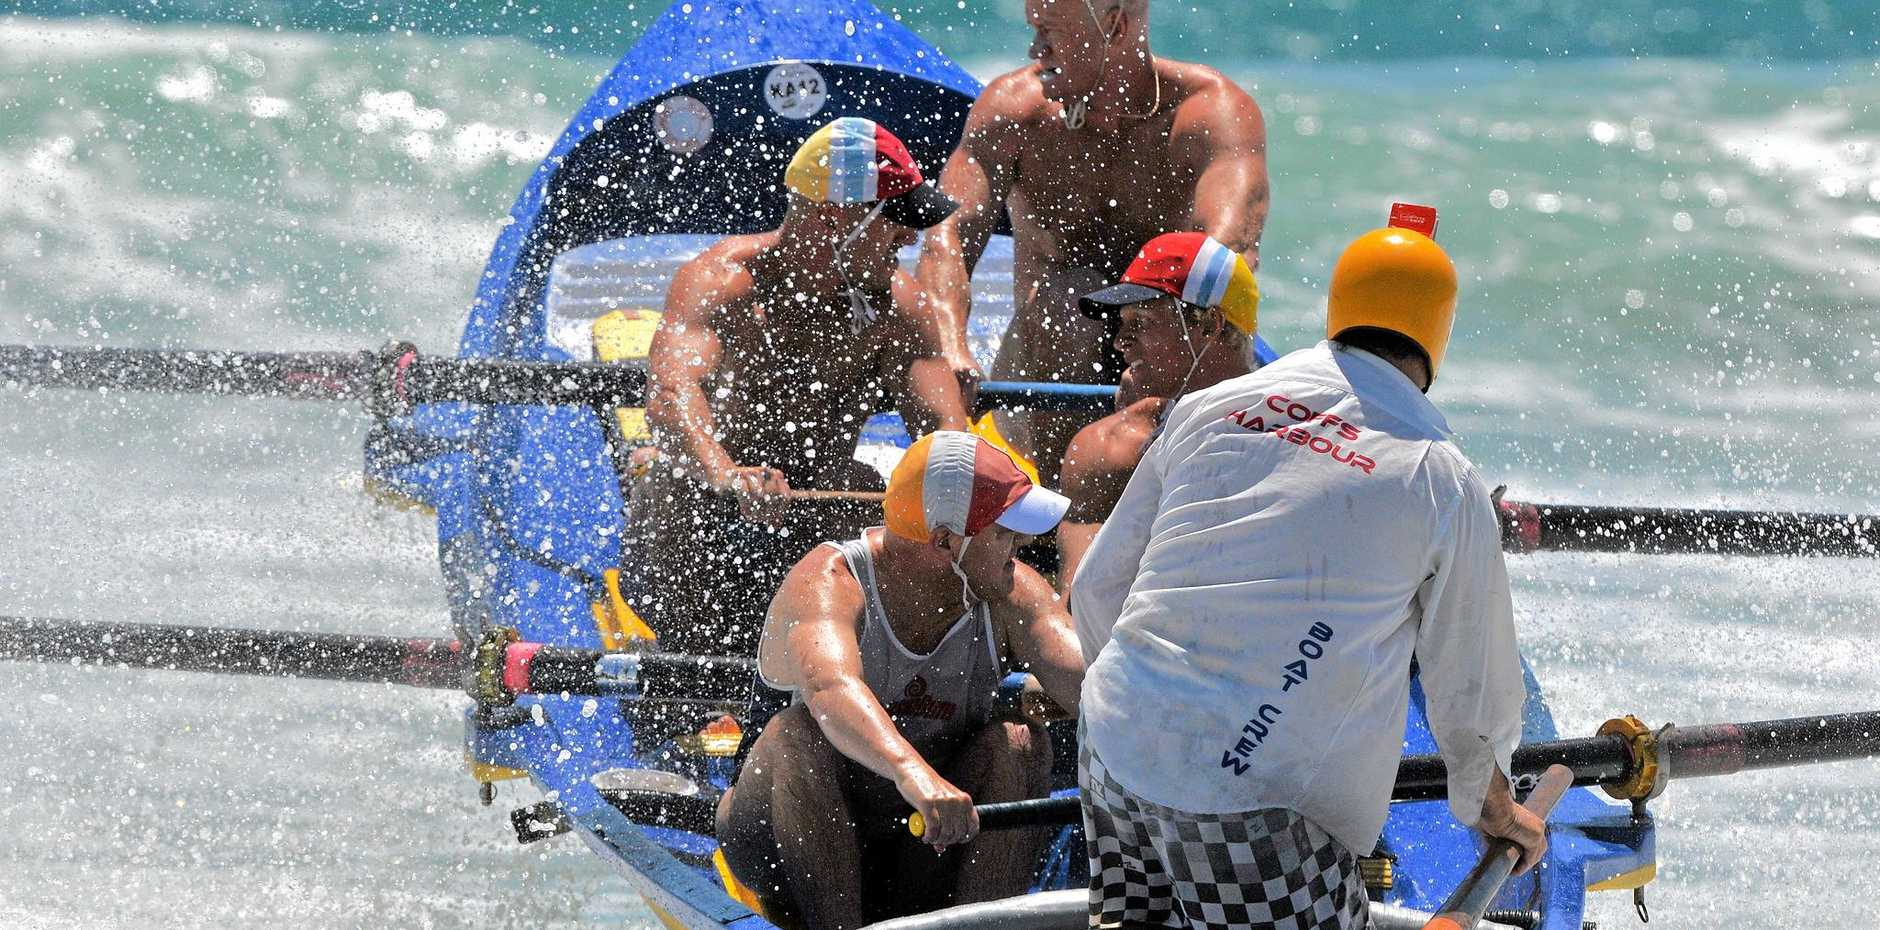 Coffs Harbour SLSC is hosting a 'come and try day' for surfboat rowing in Jetty harbour on Sunday.